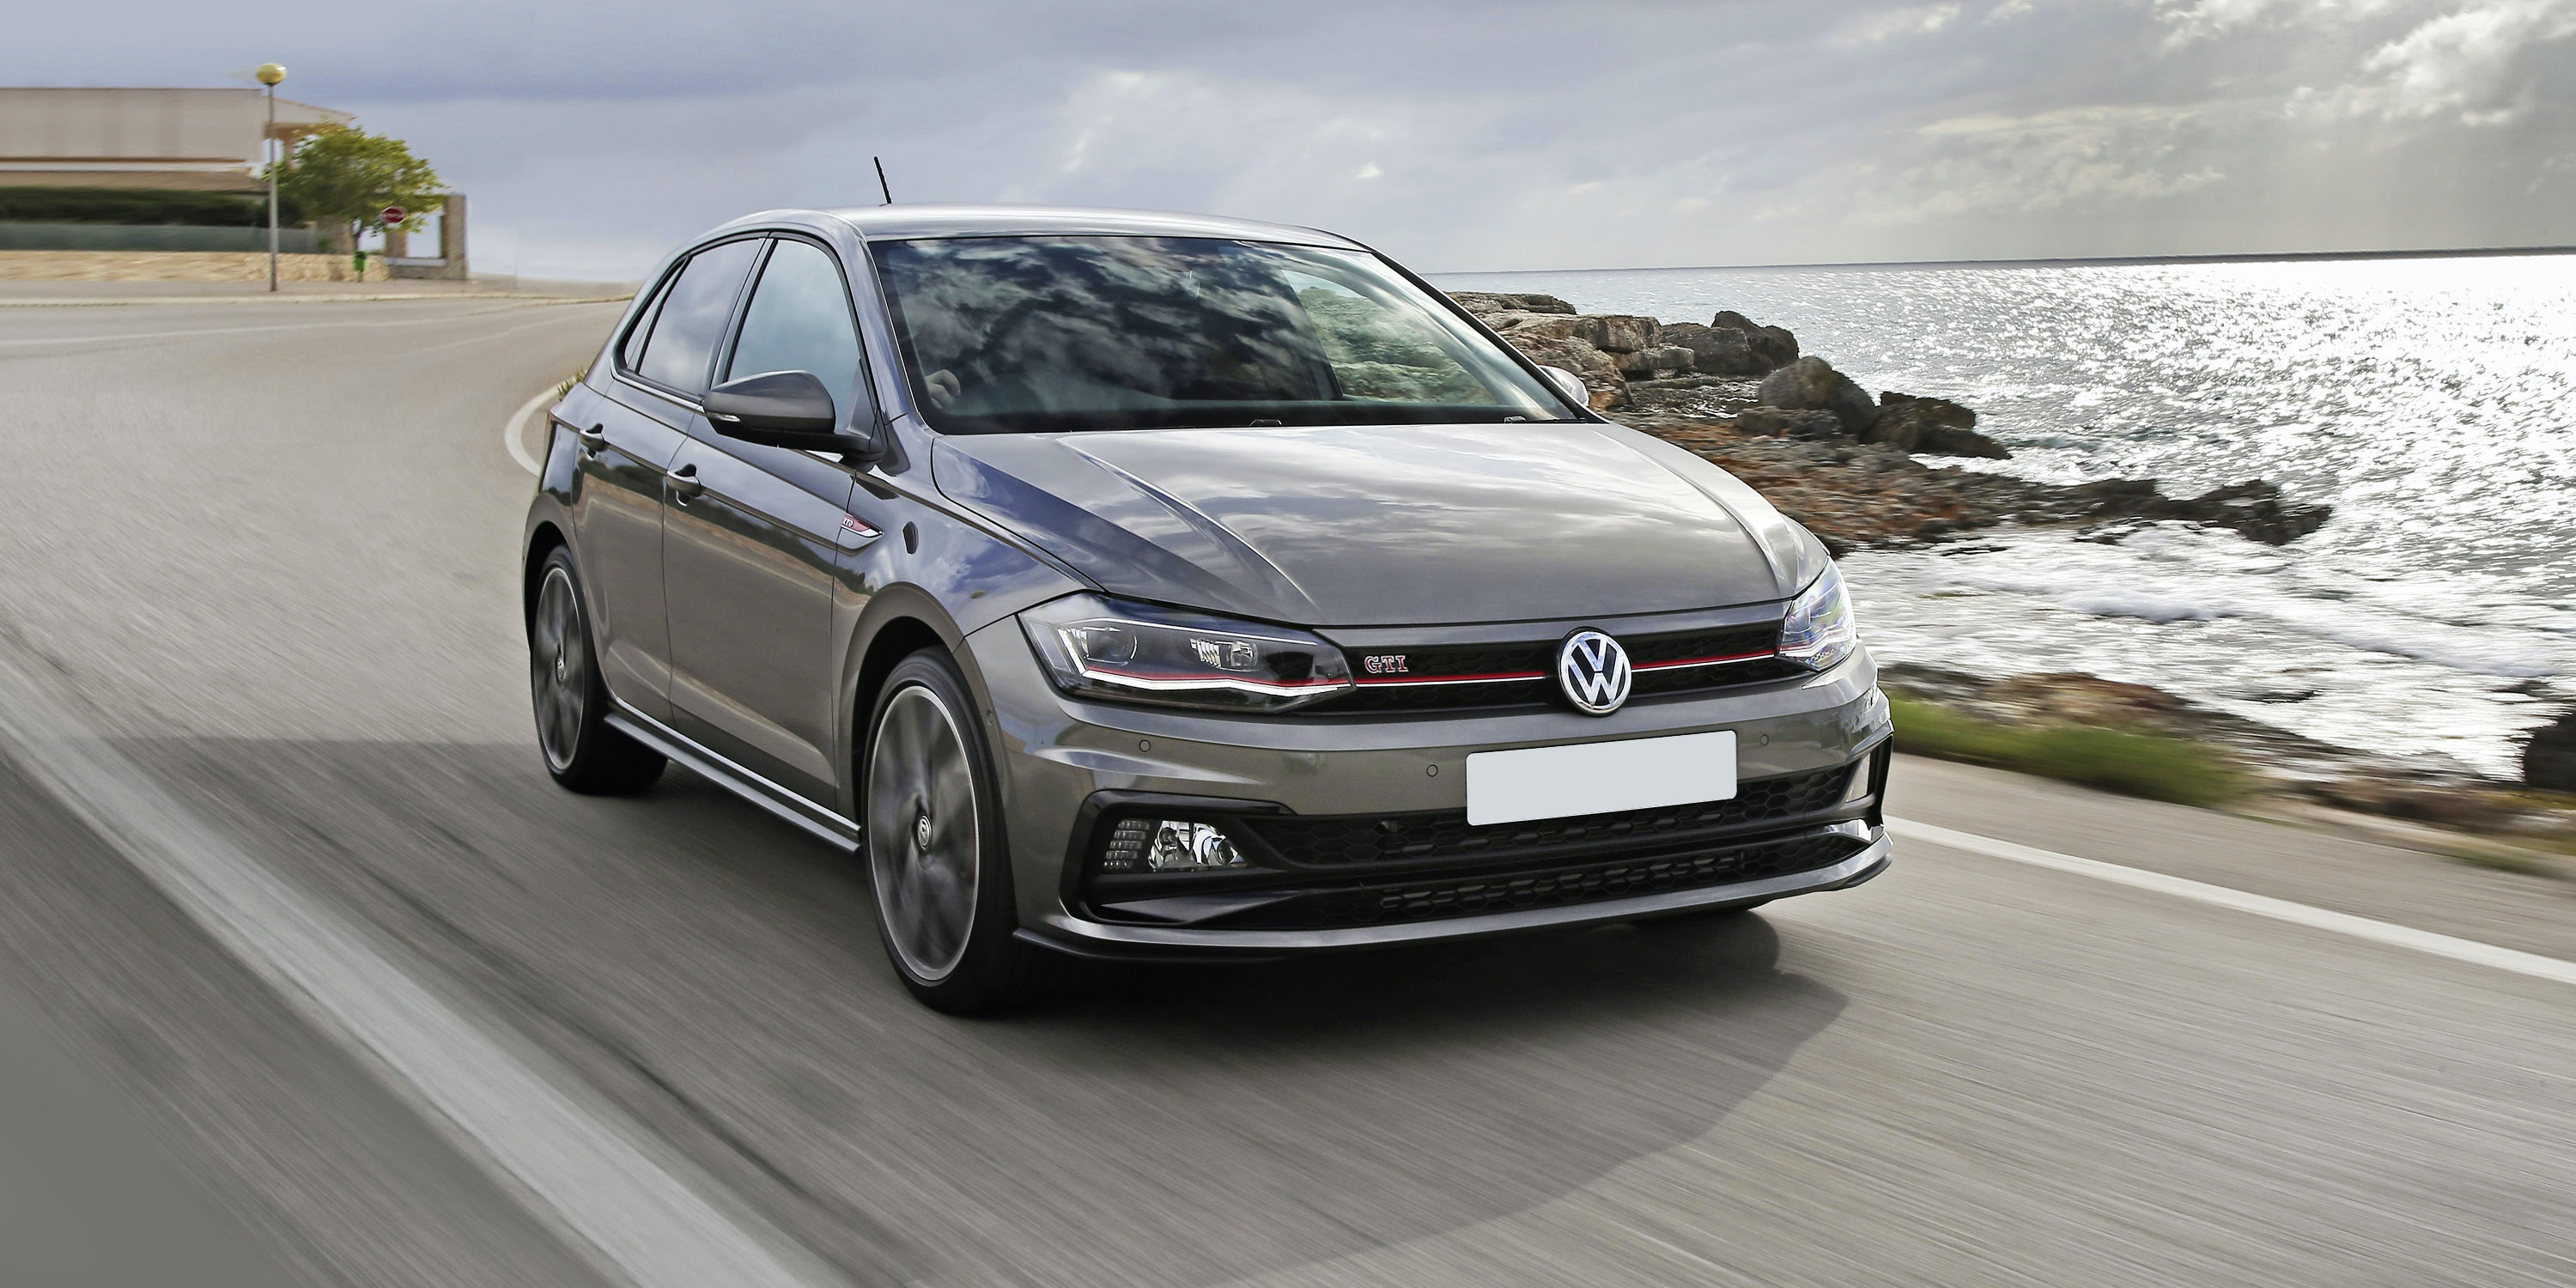 Volkswagen Polo Gti 2018 Review Carwow